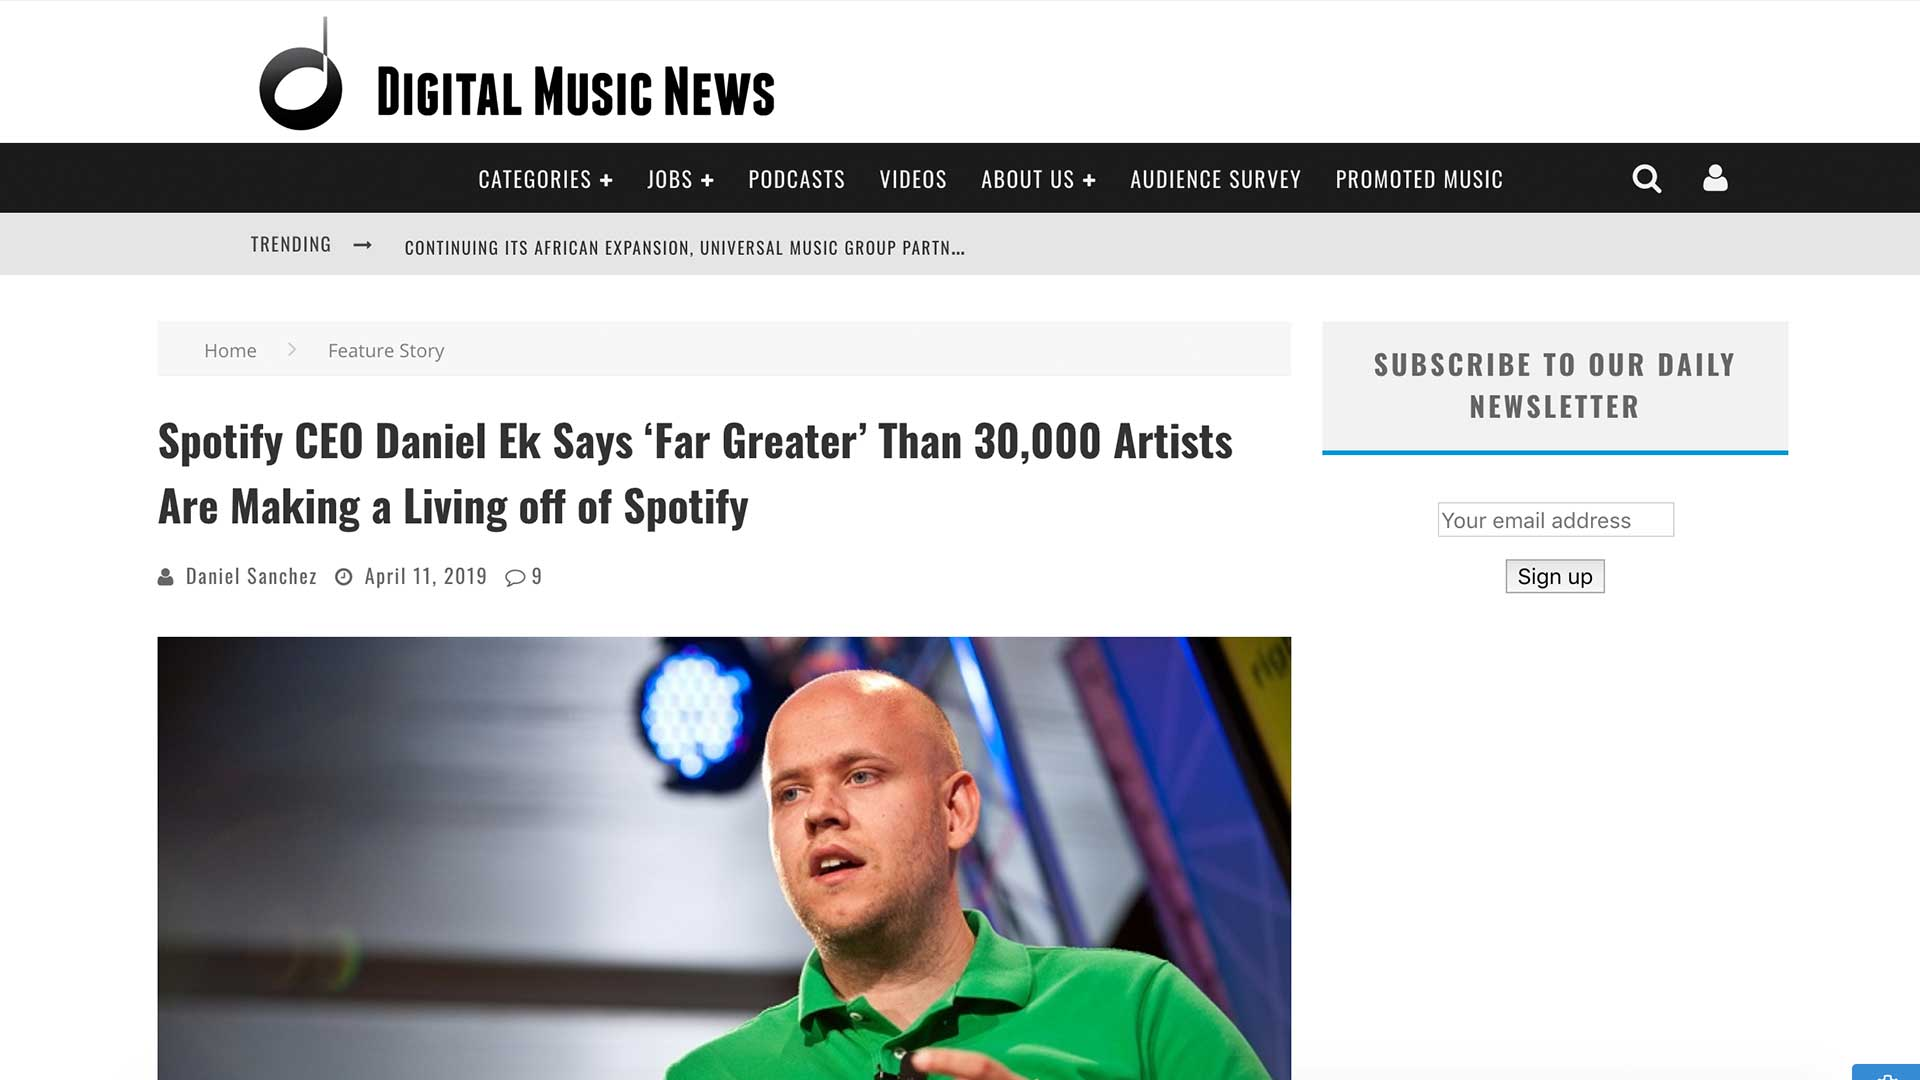 Fairness Rocks News Spotify CEO Daniel Ek Says 'Far Greater' Than 30,000 Artists Are Making a Living off of Spotify